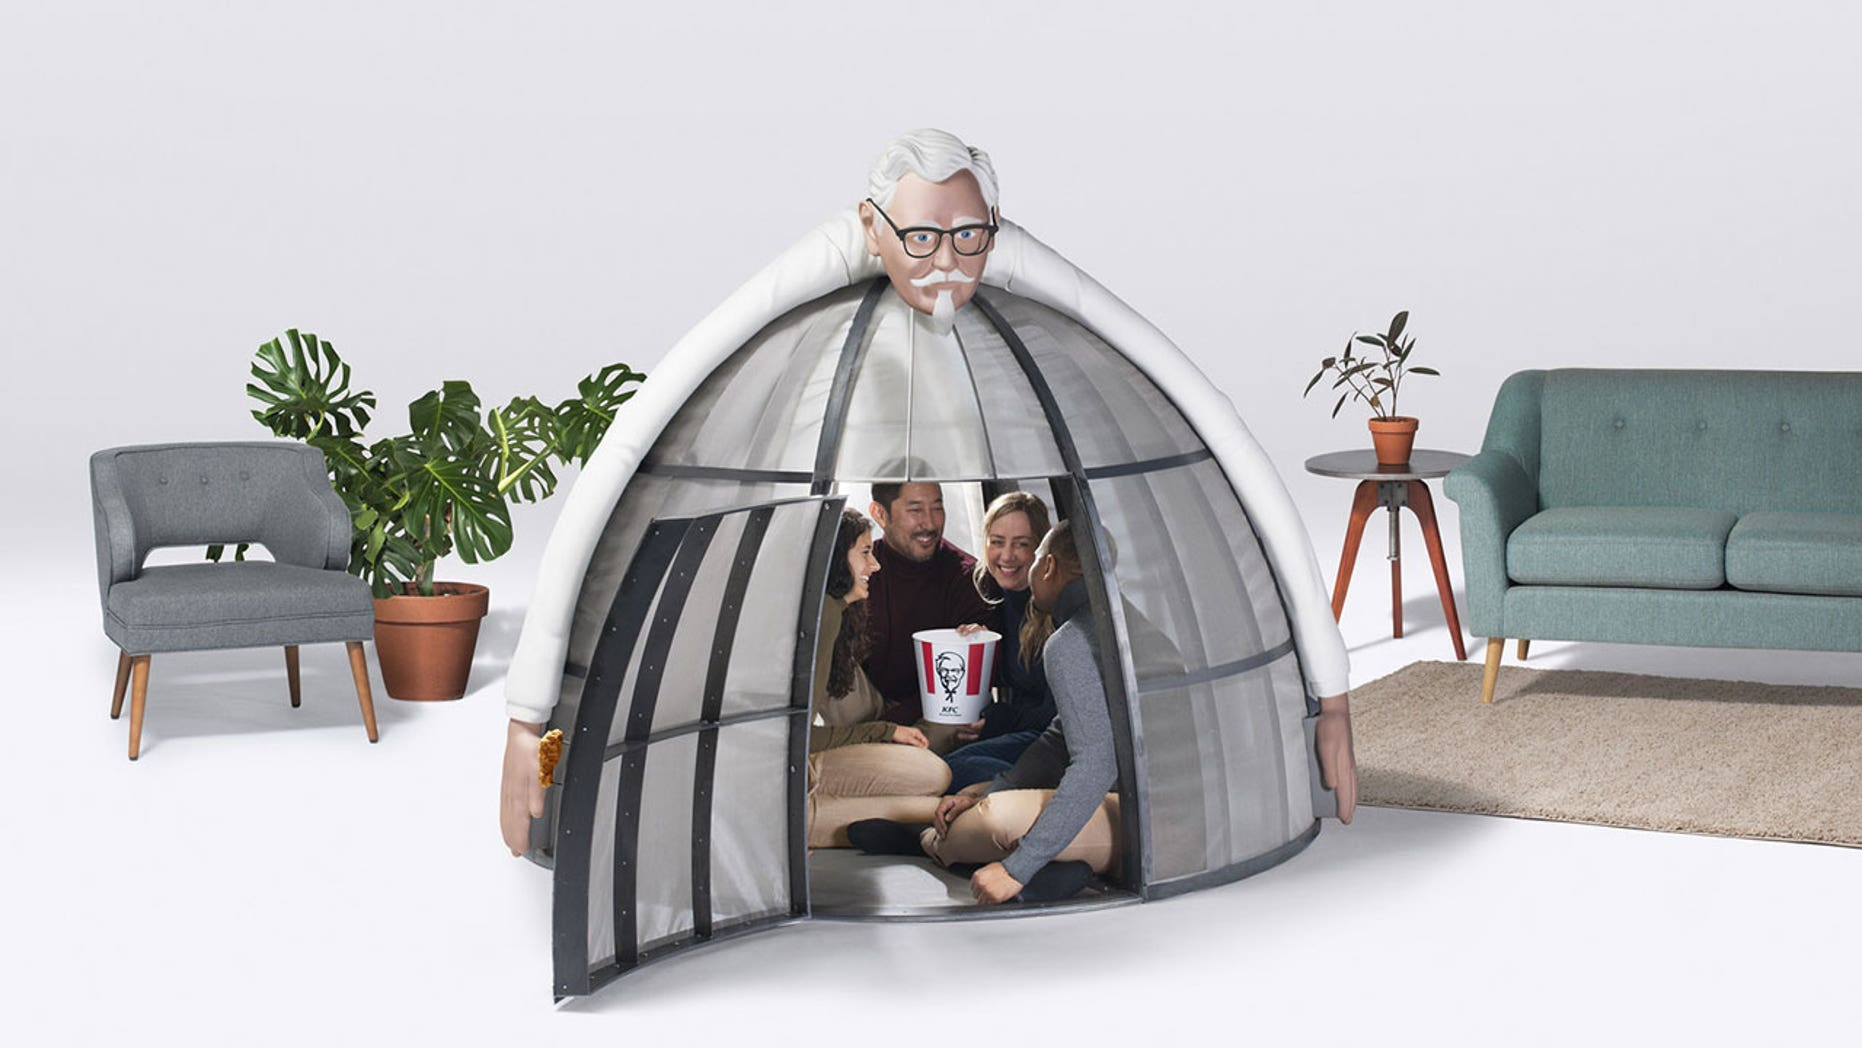 KFC's one-of-a-kind steel, foam and colonel-topped igloo blocks internet signals from leaving or entering the igloo.